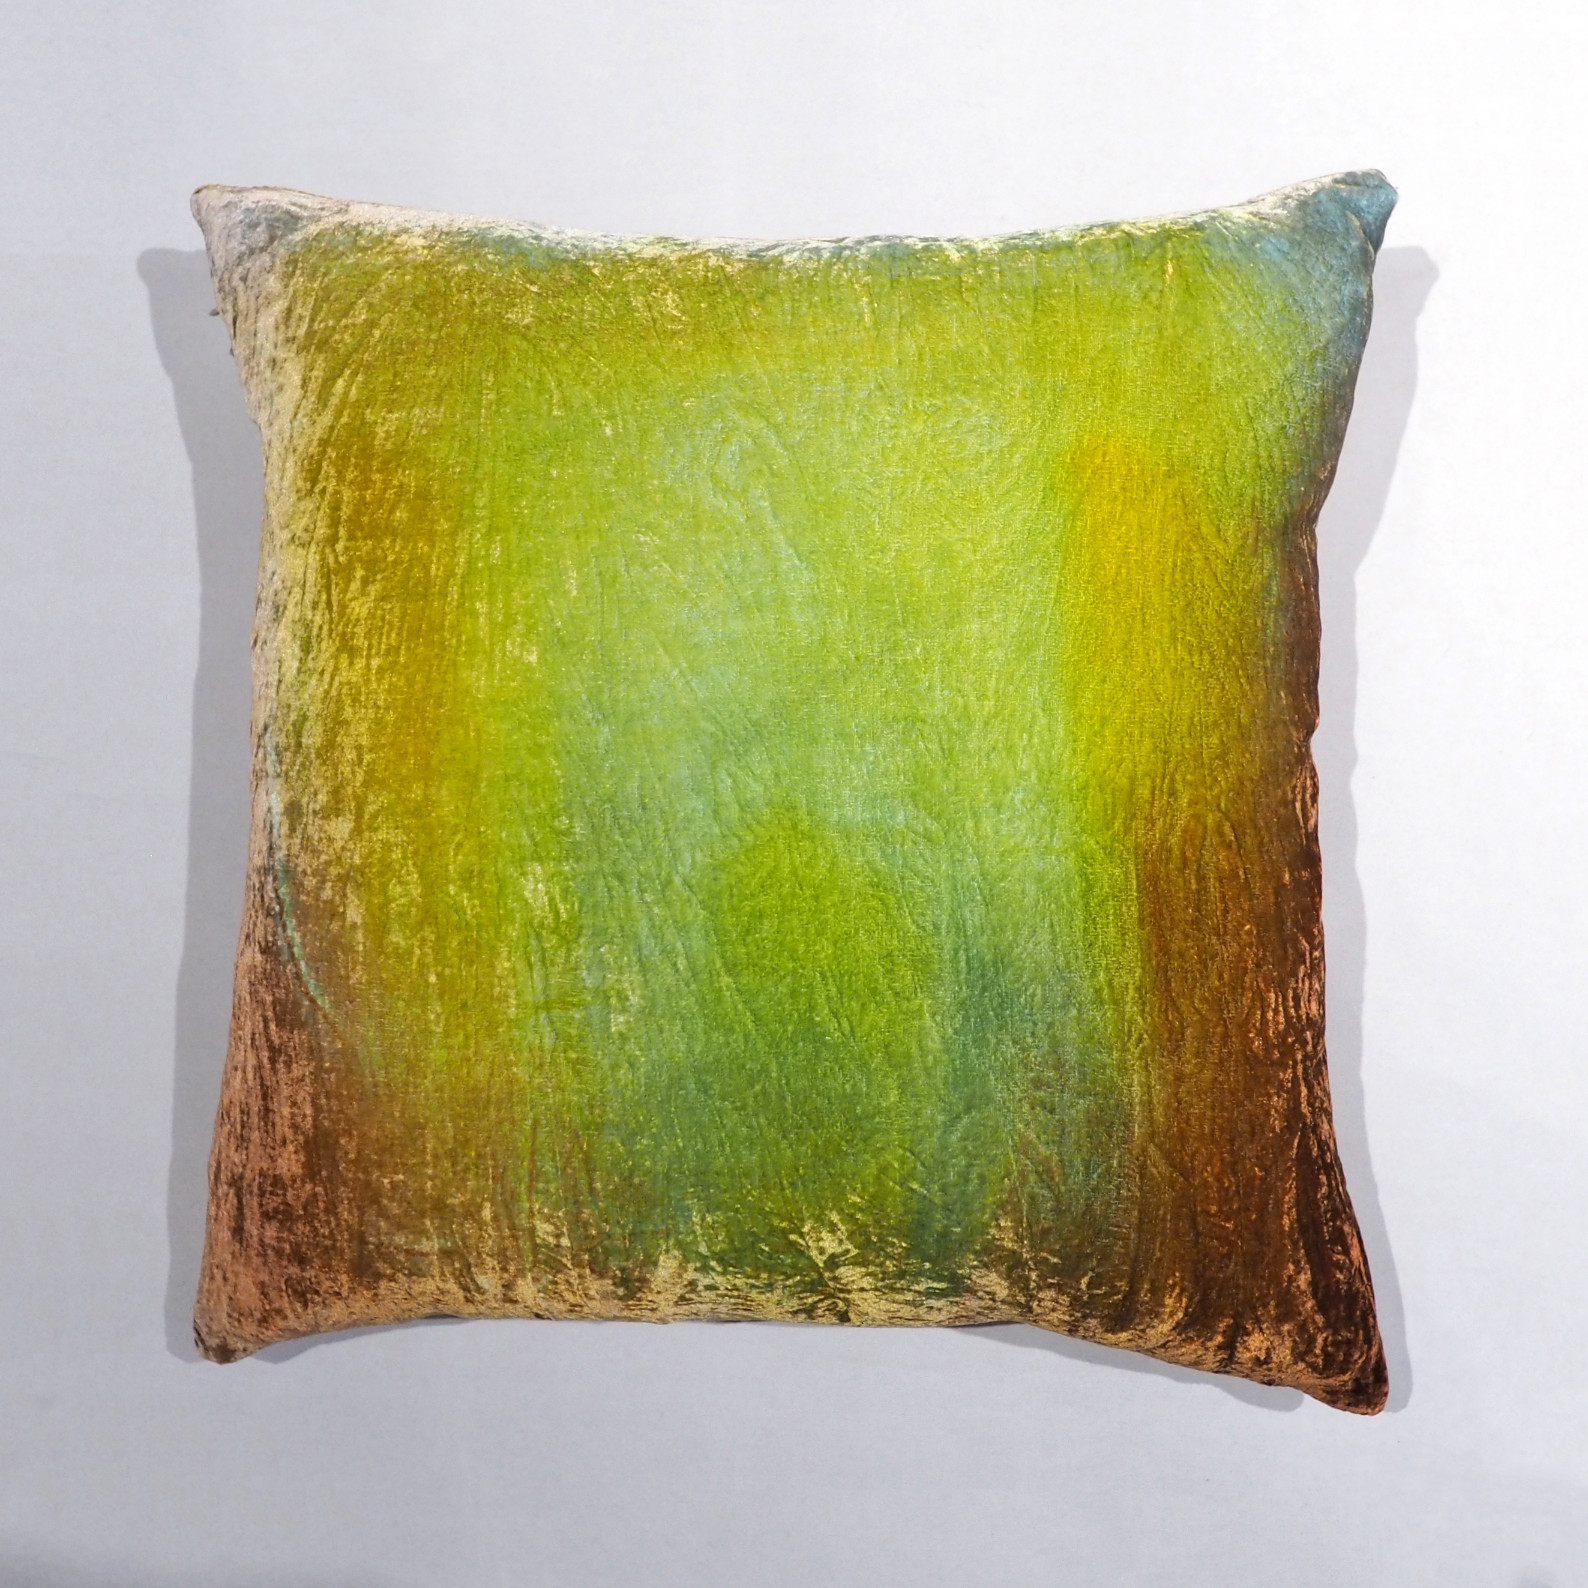 ff73a3e2310b4 Painted Velvet Accent Pillows – PVV0010AP. Shipping Available. SKU  ...